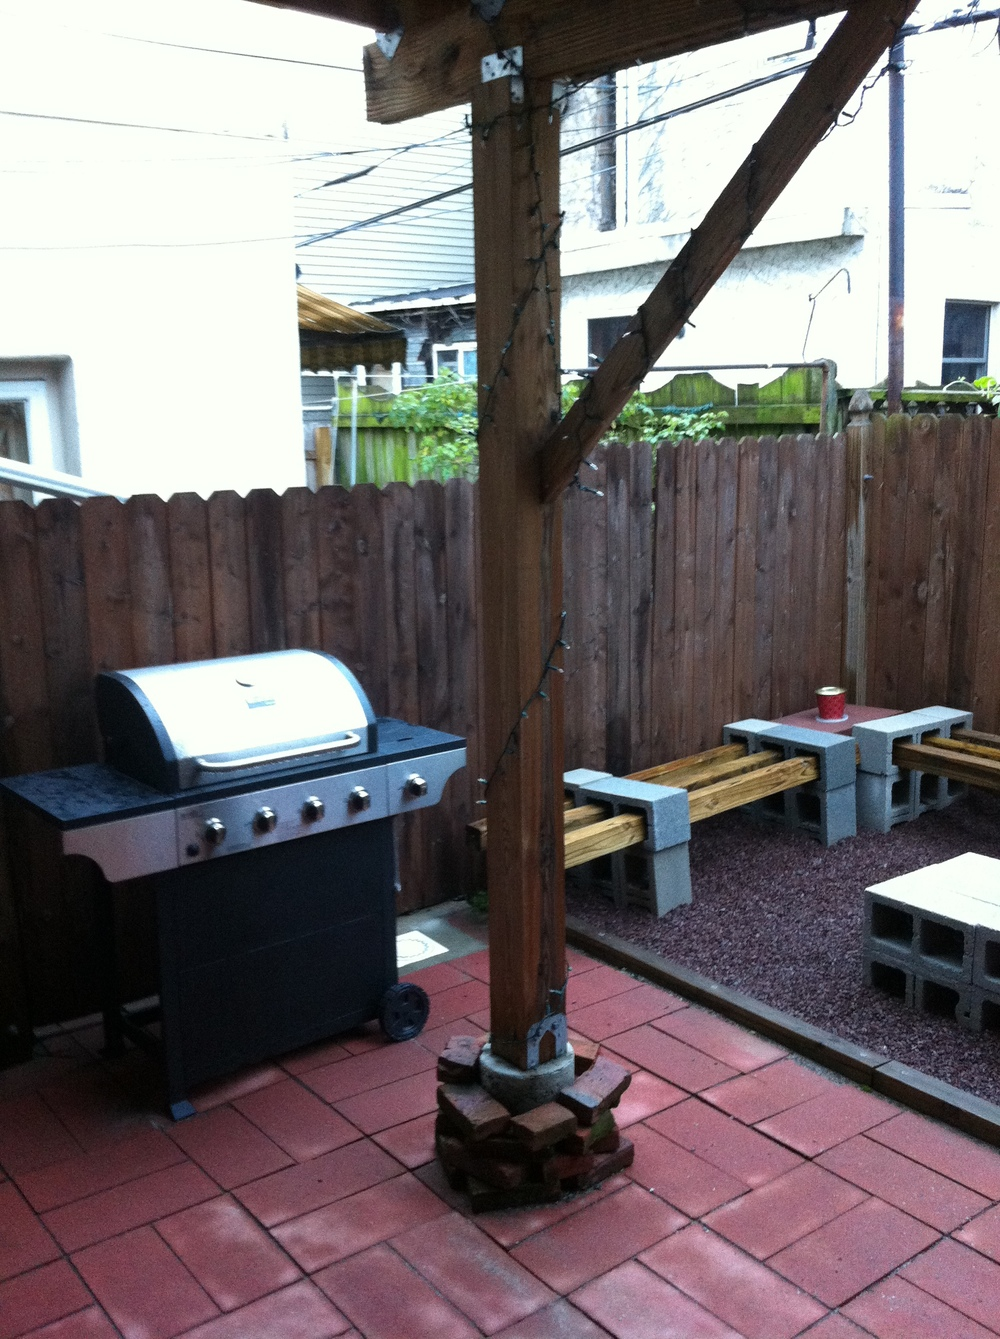 Easy access to the grill for patio parties!